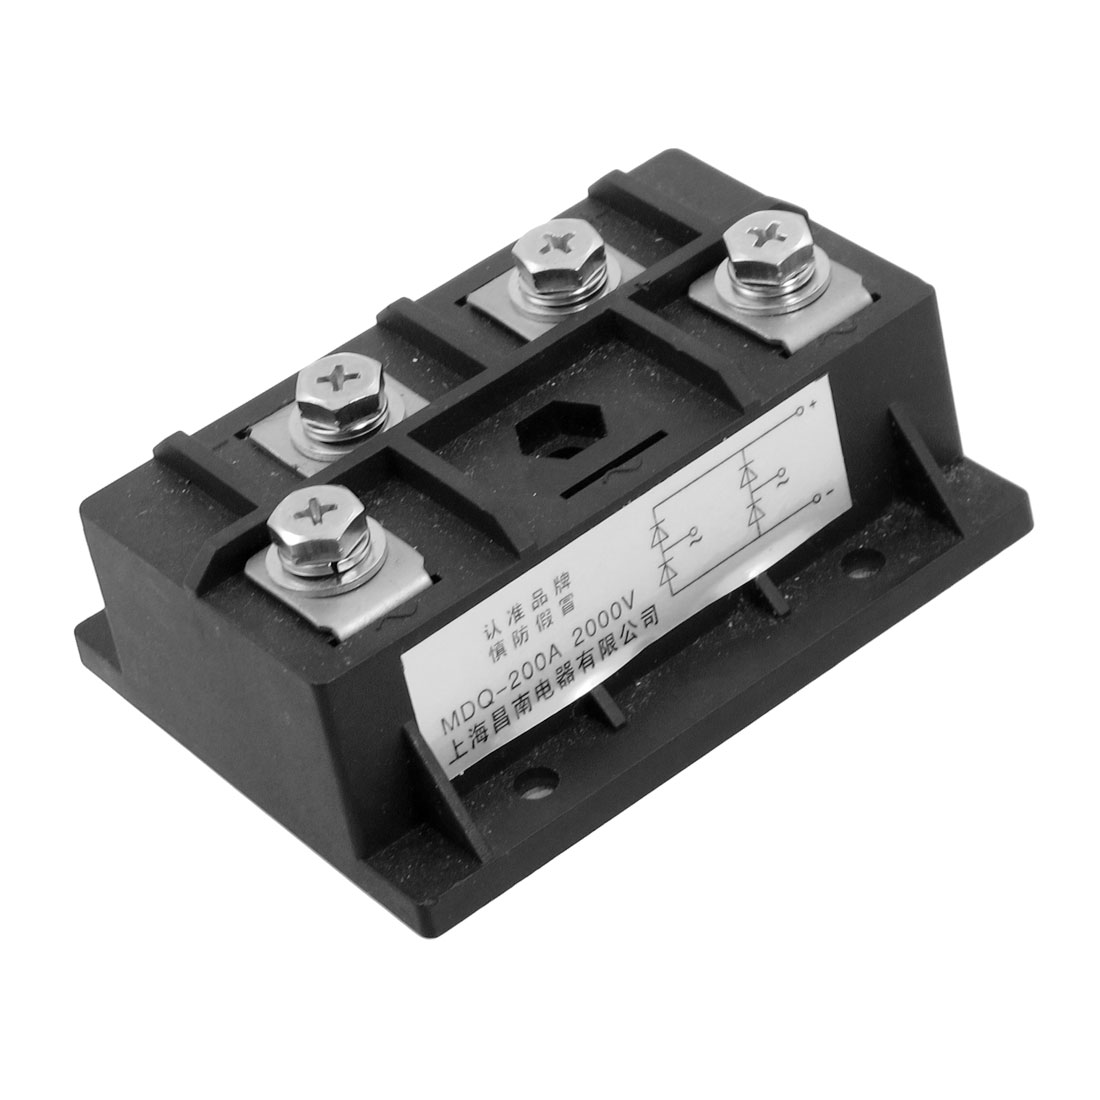 Black 4 Terminals Rectifier Module Transistor Semiconductor AC 2000V 200A